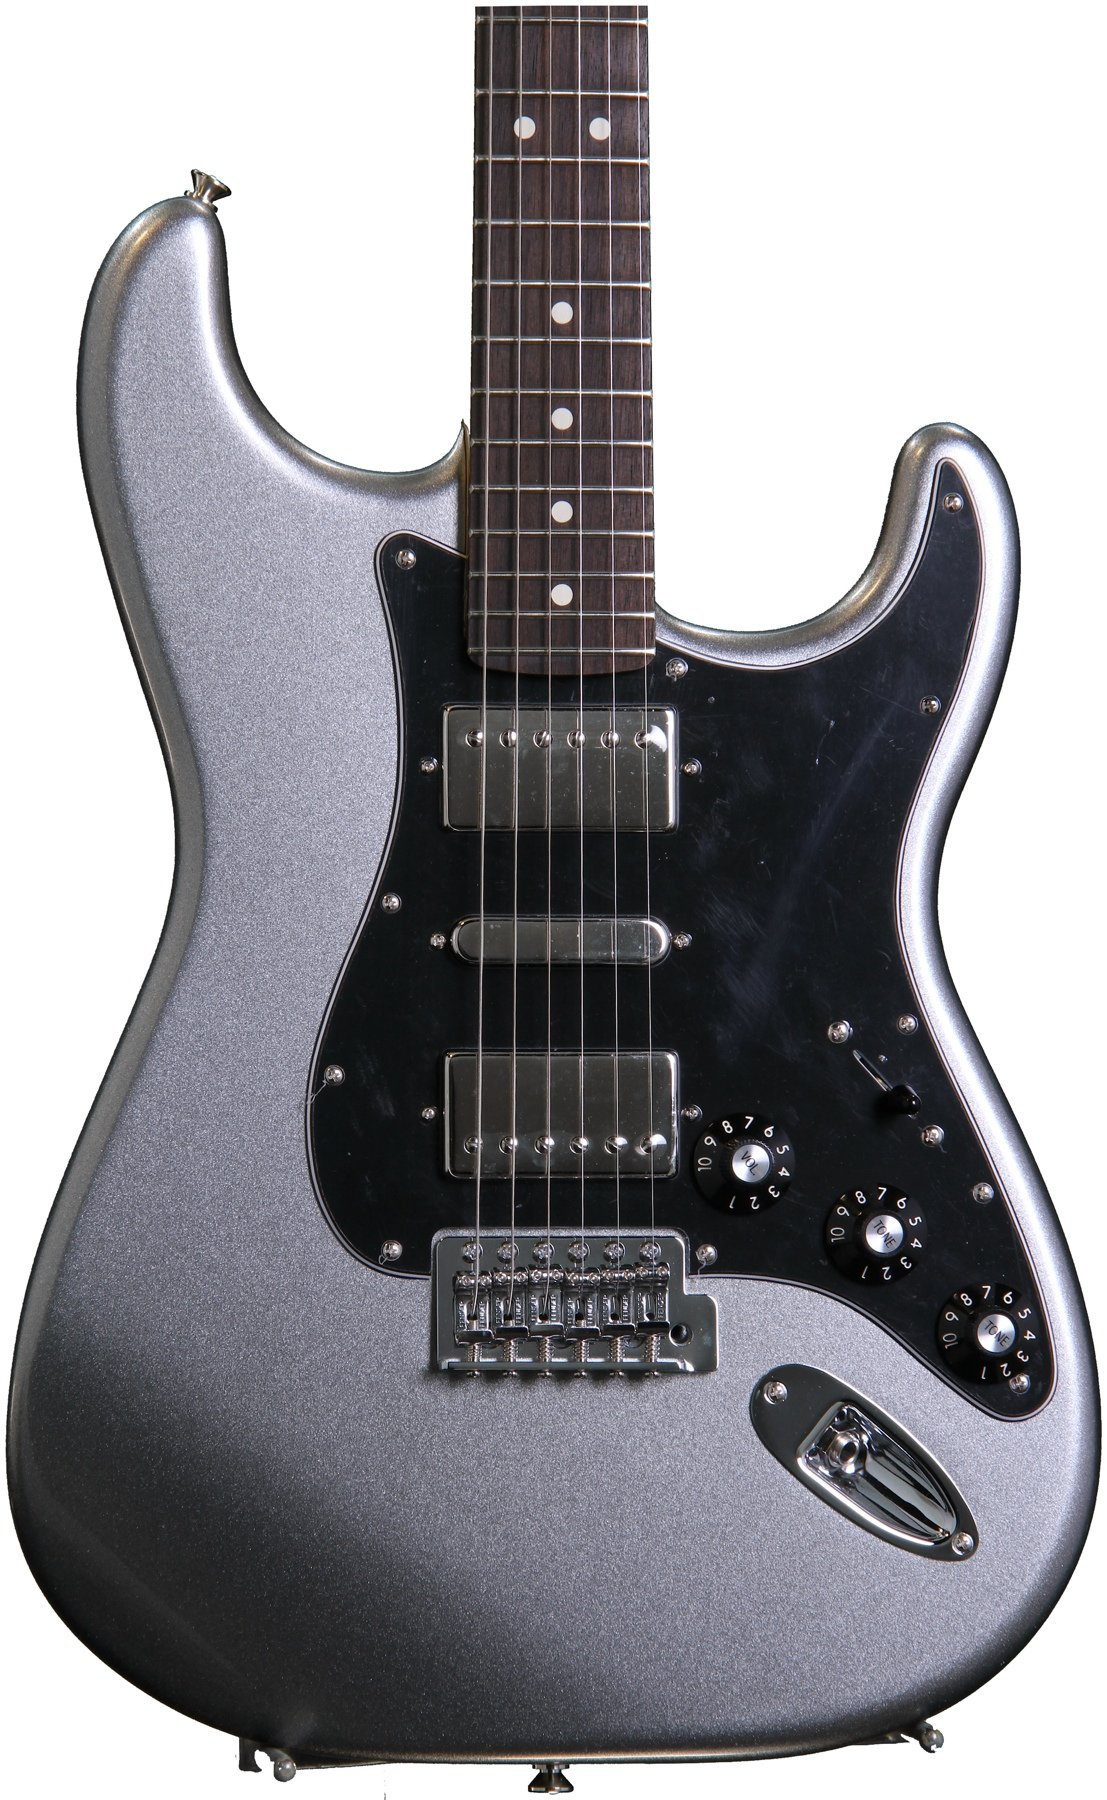 hight resolution of fender blacktop stratocaster hsh titanium silver image 1